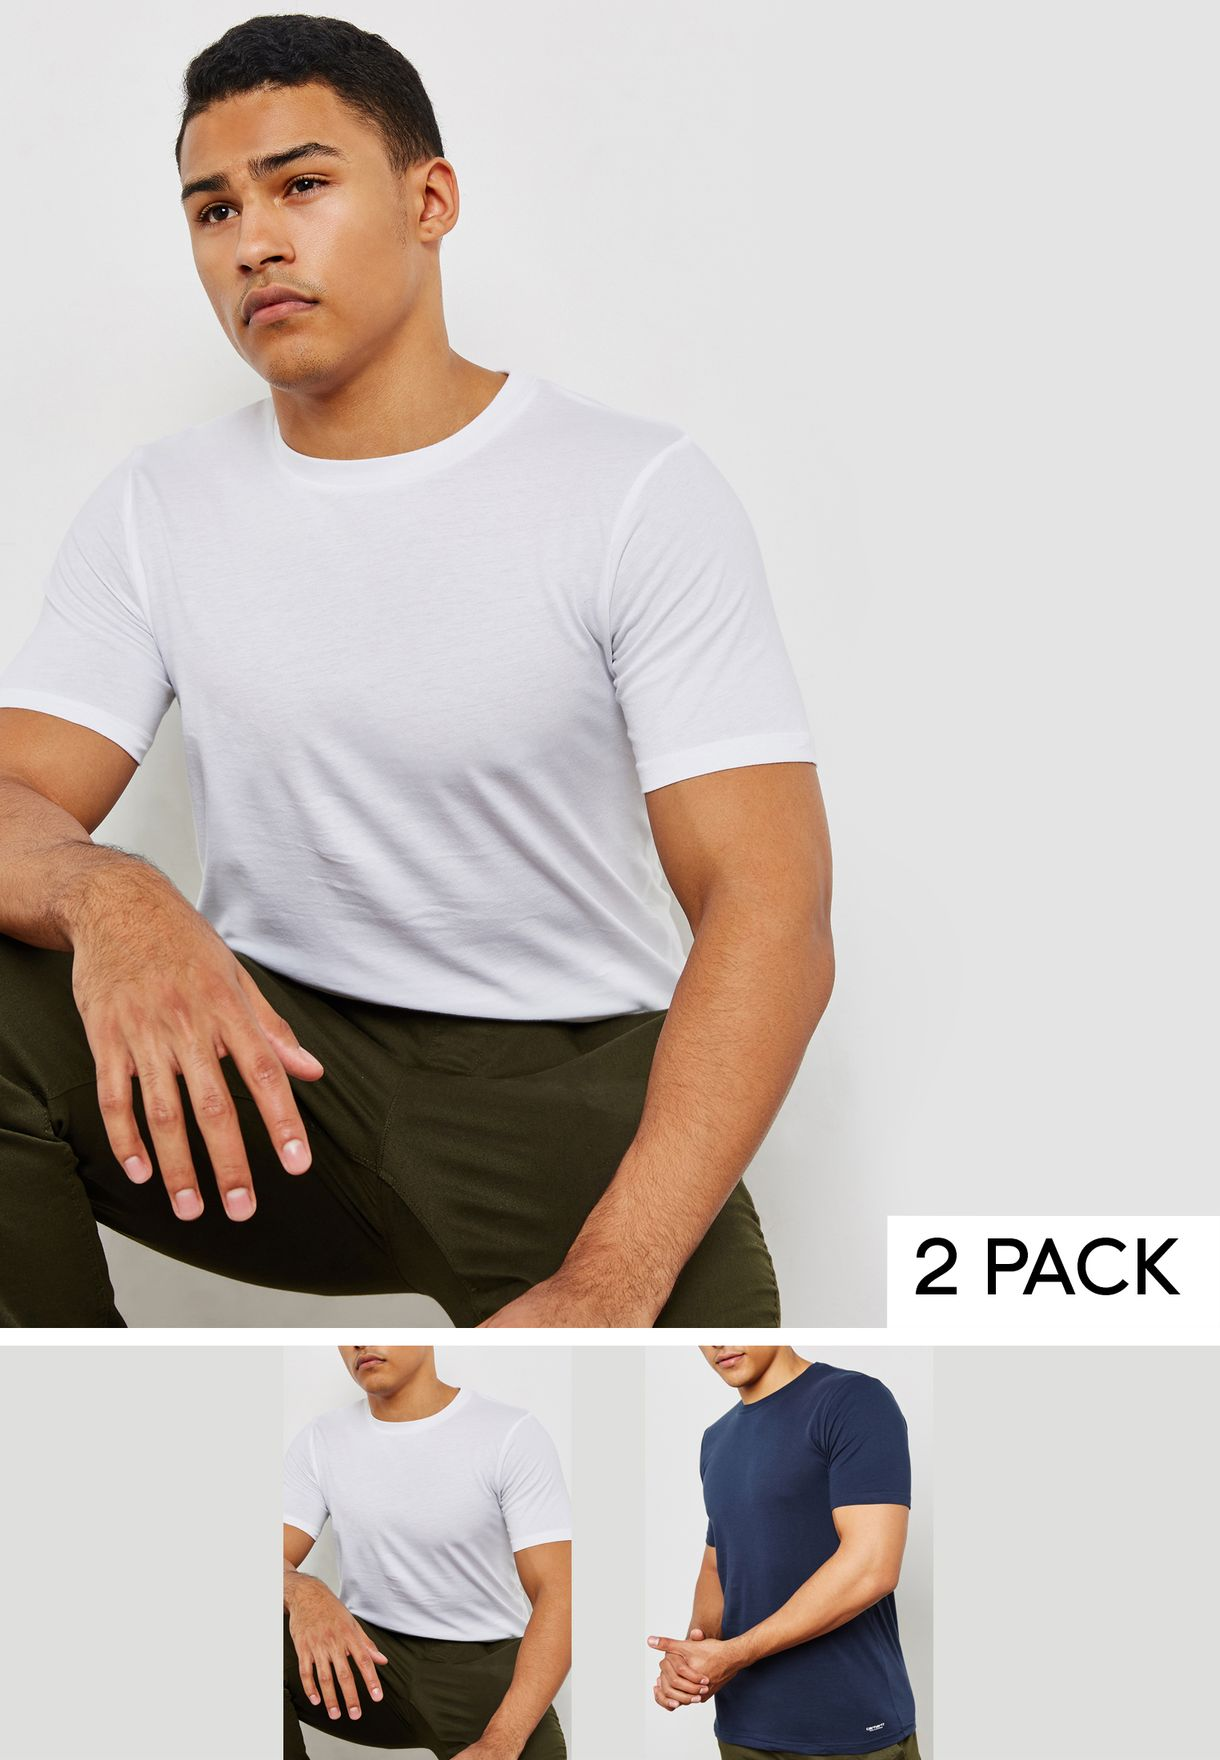 Essential 2 Pack T-Shirt